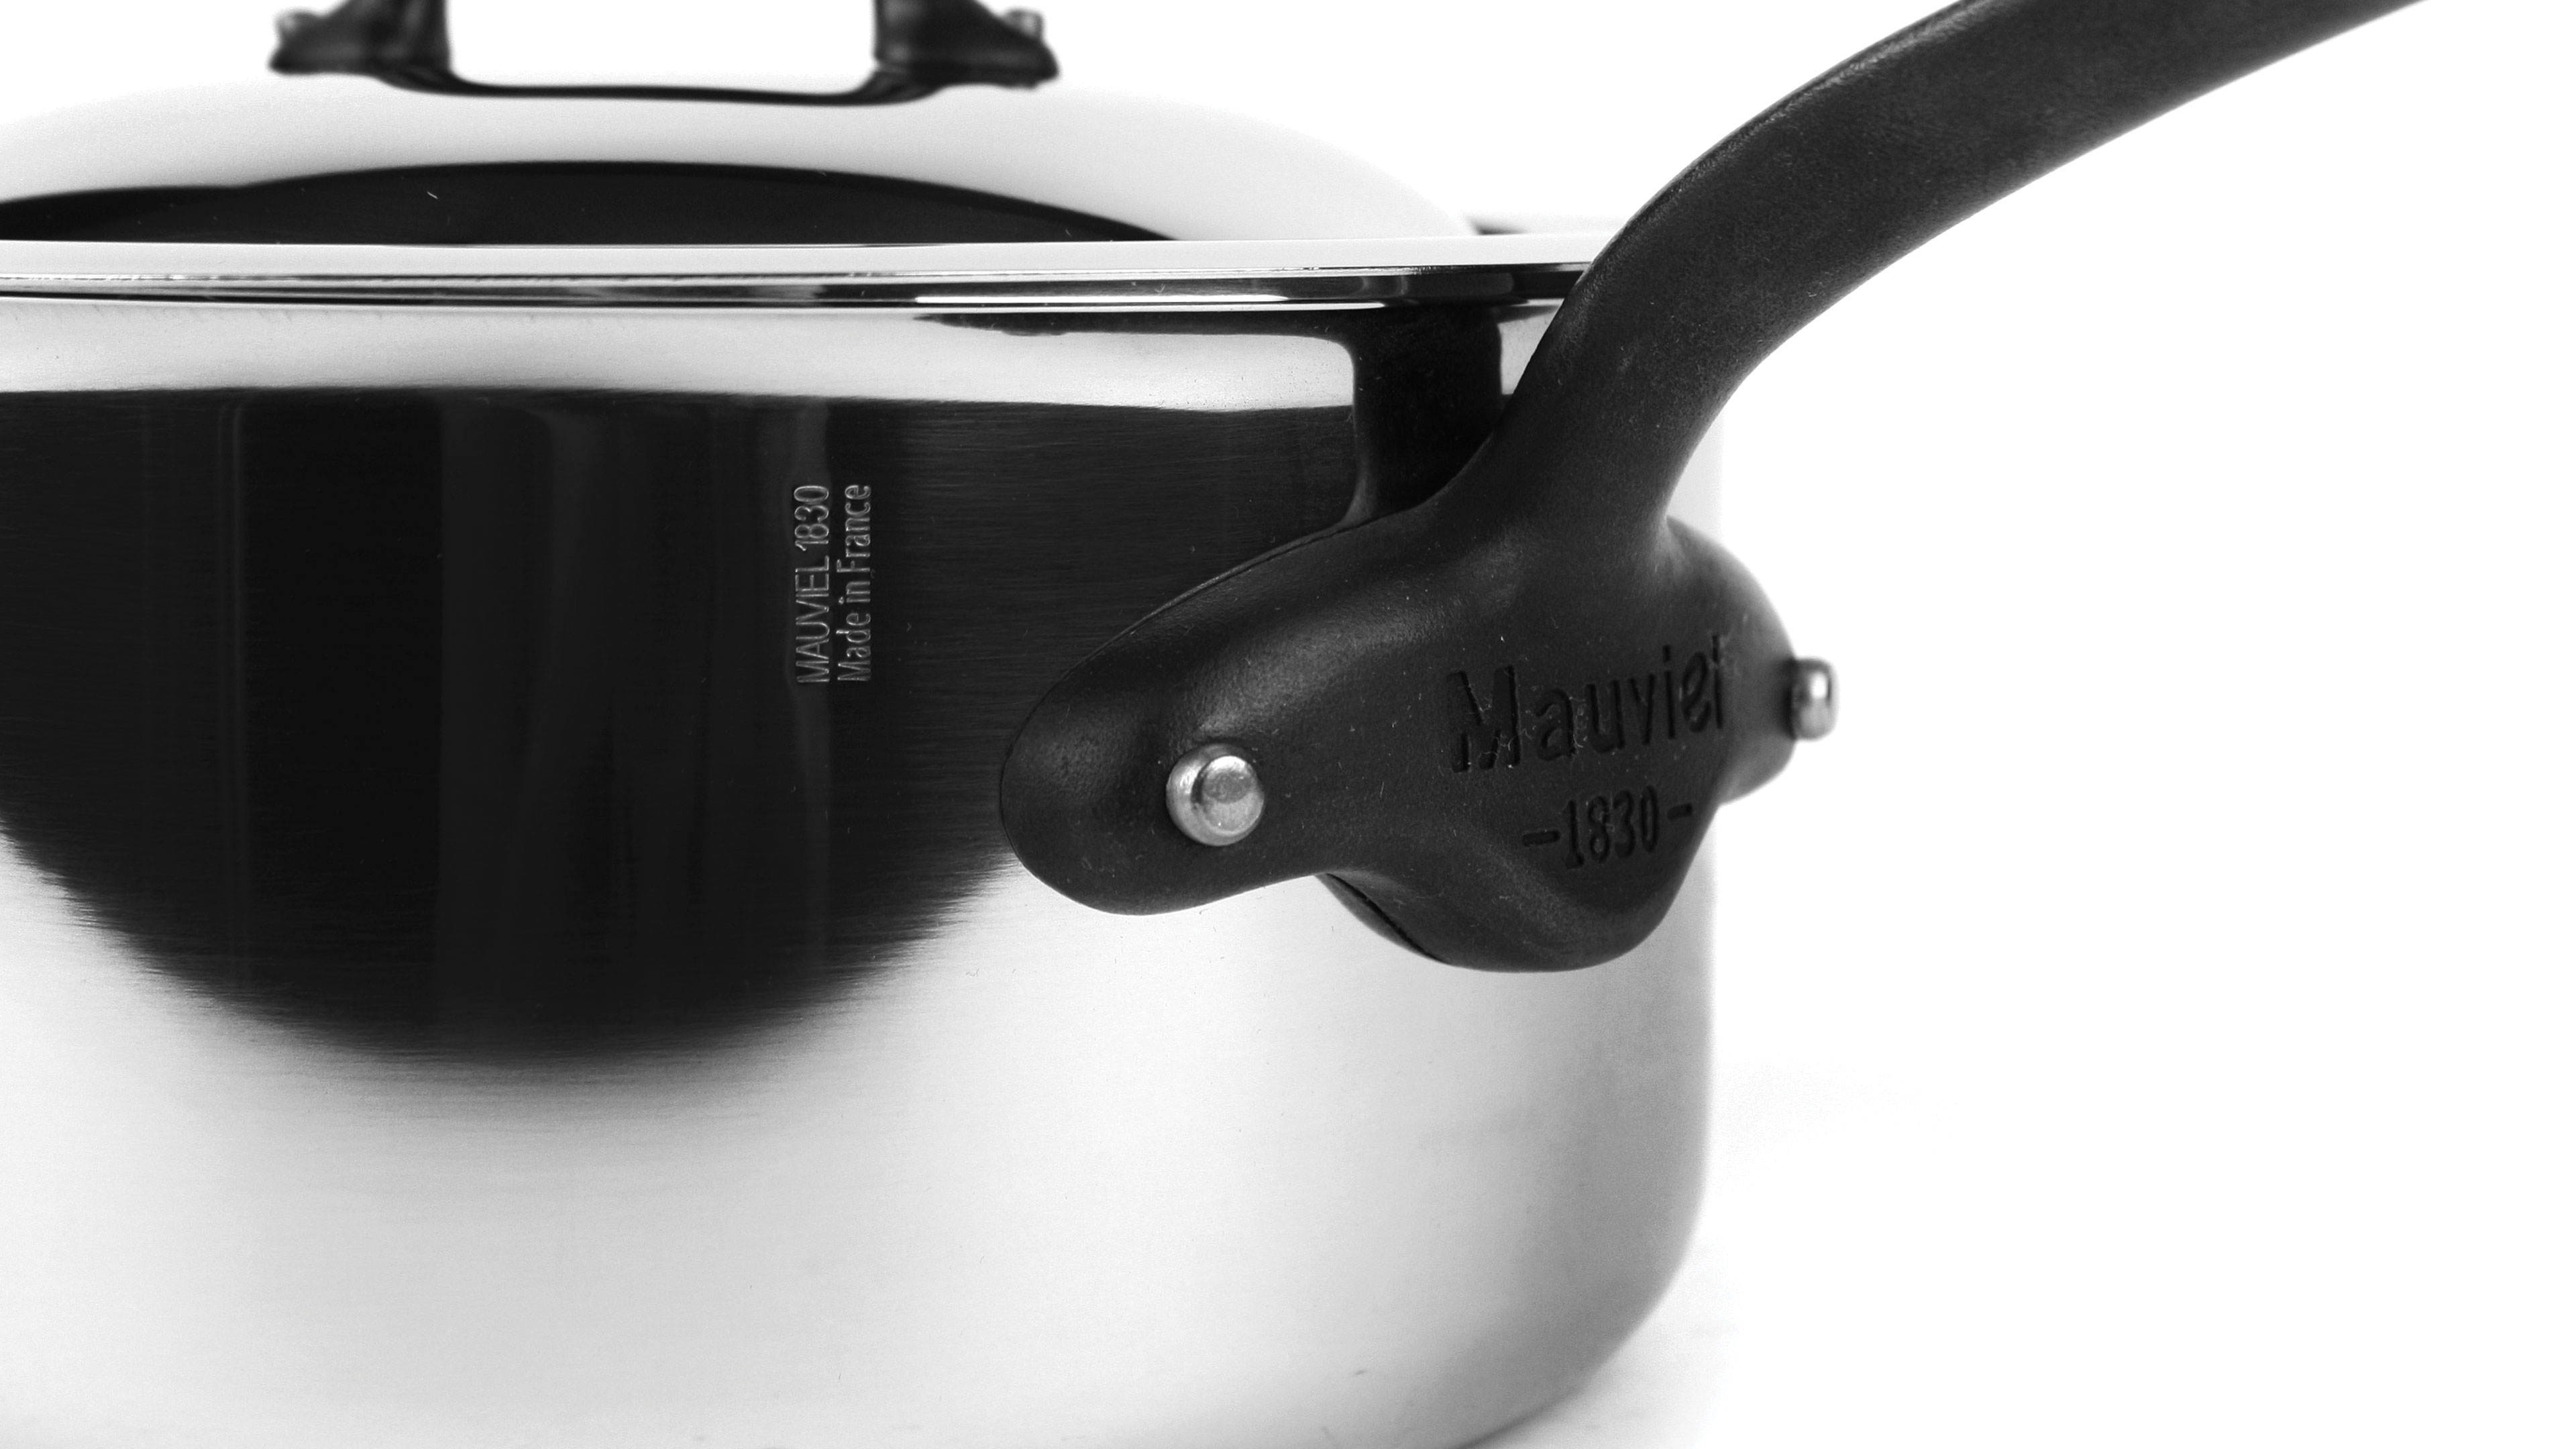 Mauviel M Cook Pro Stainless Steel Cookware Set 10 Piece